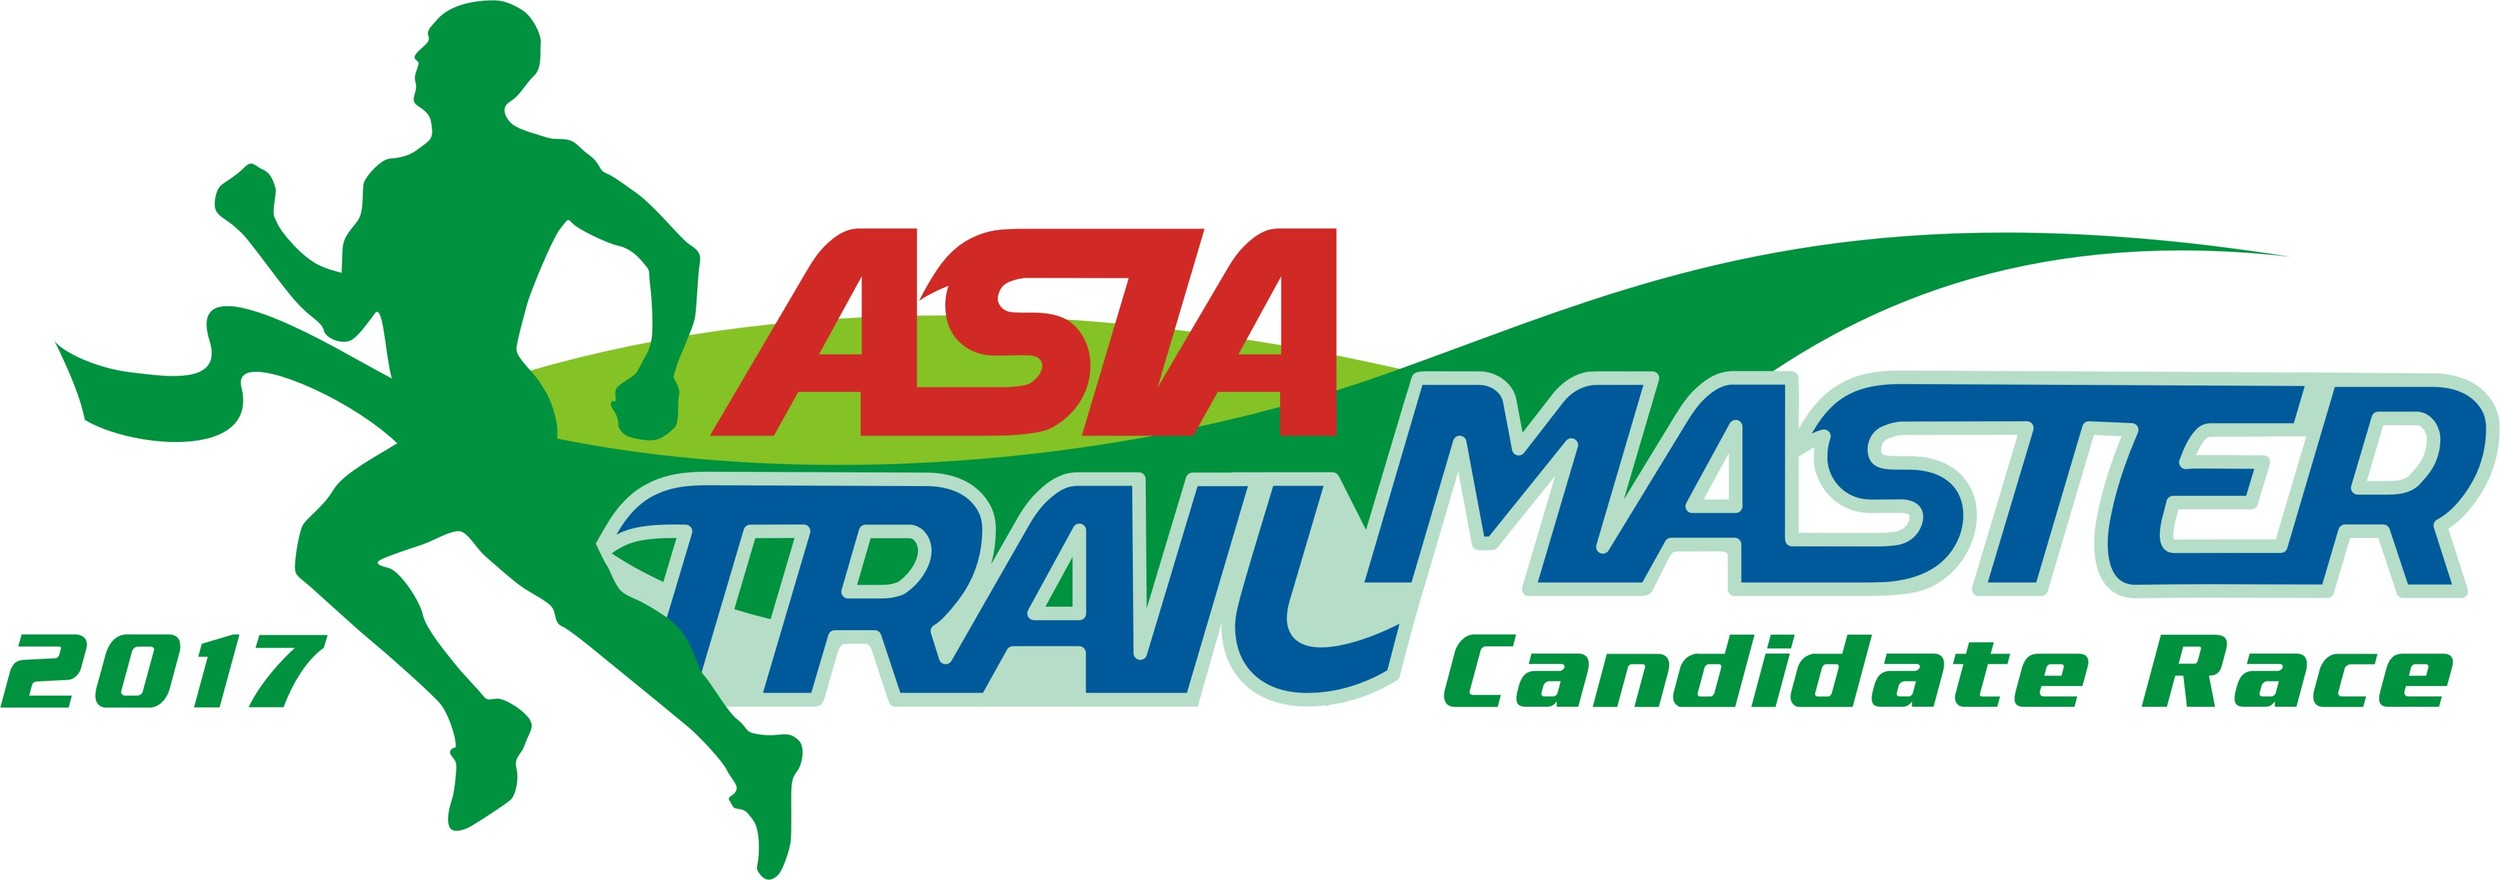 Asia Trail Master-2017-candidate race..jpg